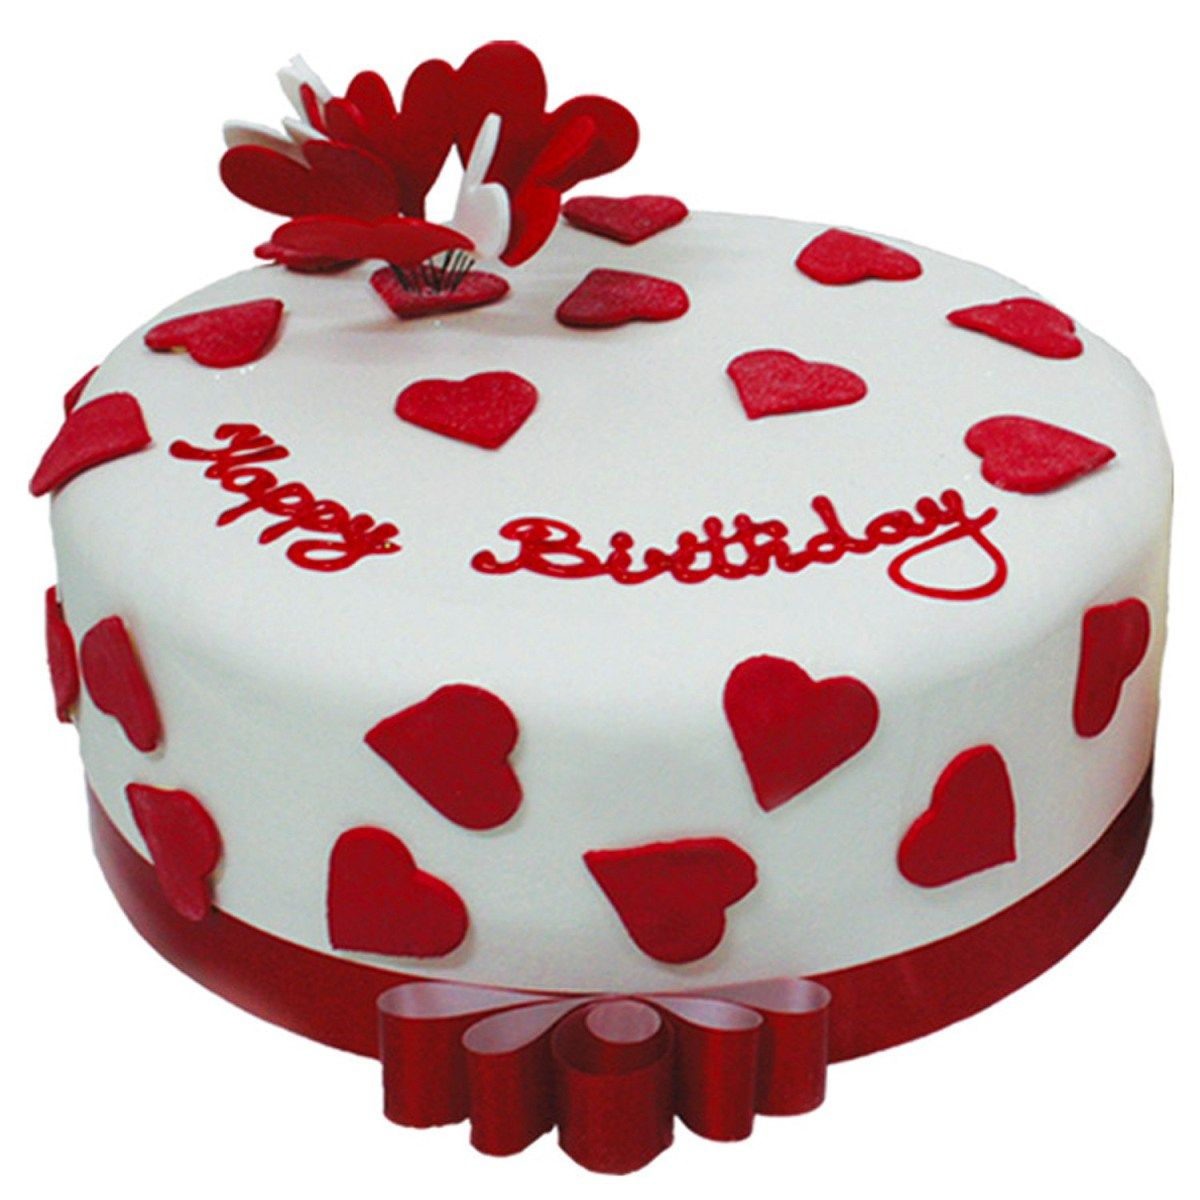 Excellent H Eart Happy Birthday Cake Picture Red And White Hearts Red Funny Birthday Cards Online Alyptdamsfinfo